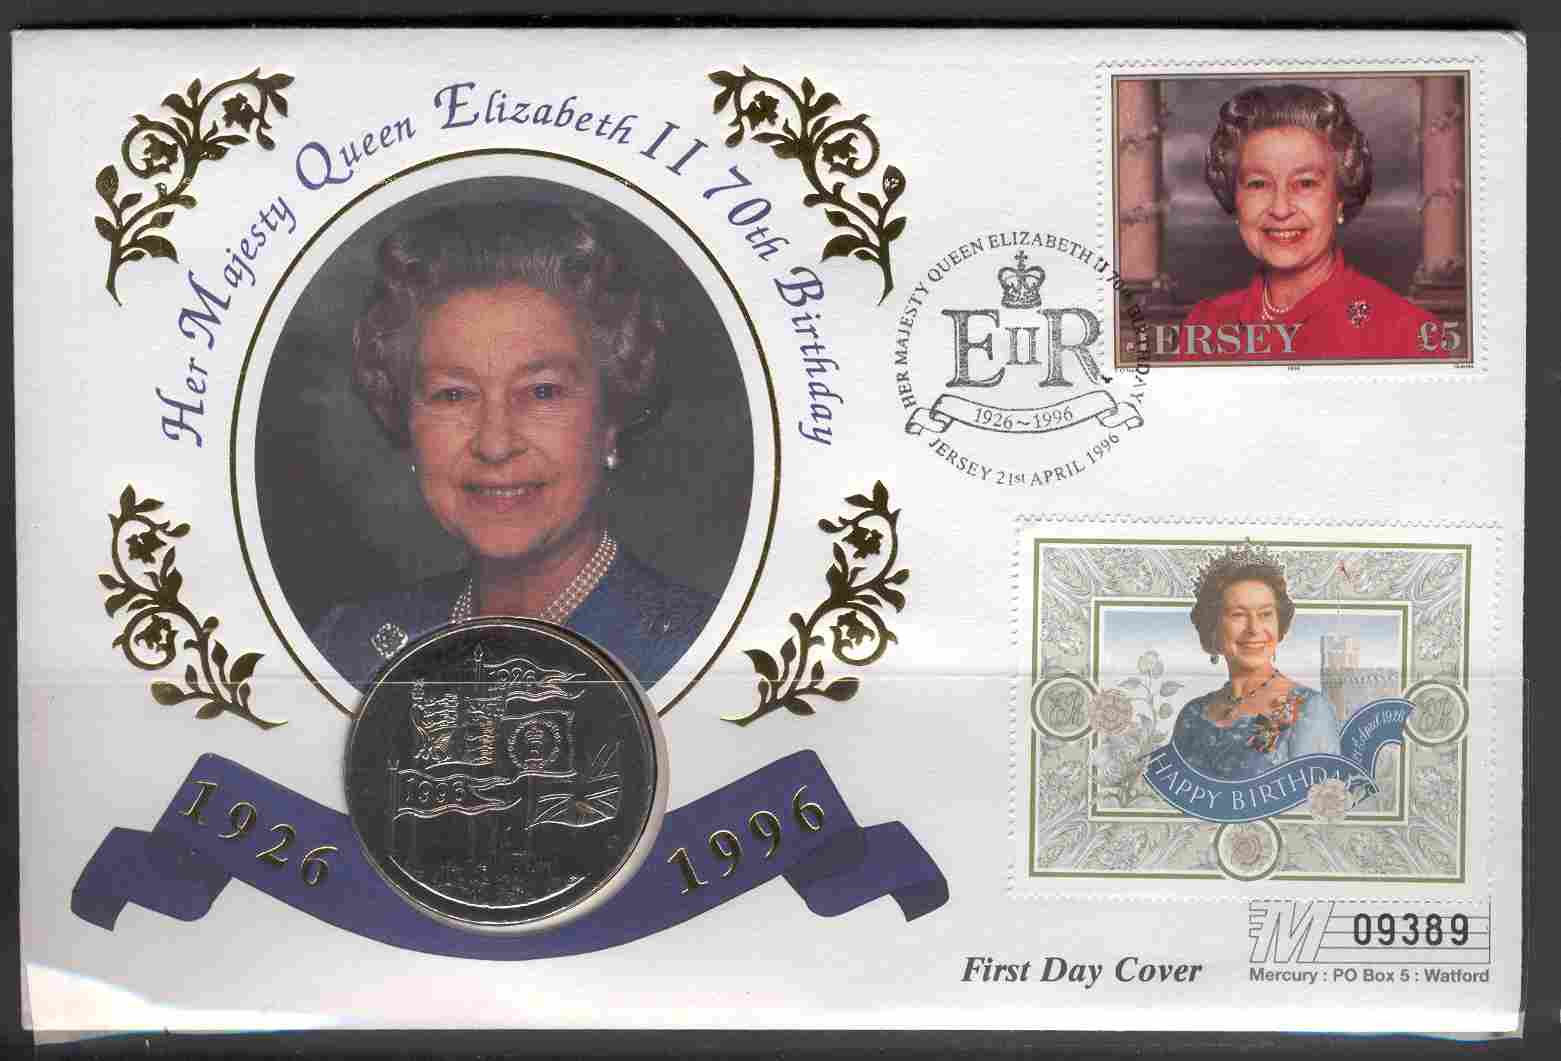 1996 Jersey - 70th Birthday of Queen Elizabeth II - Coin Cover